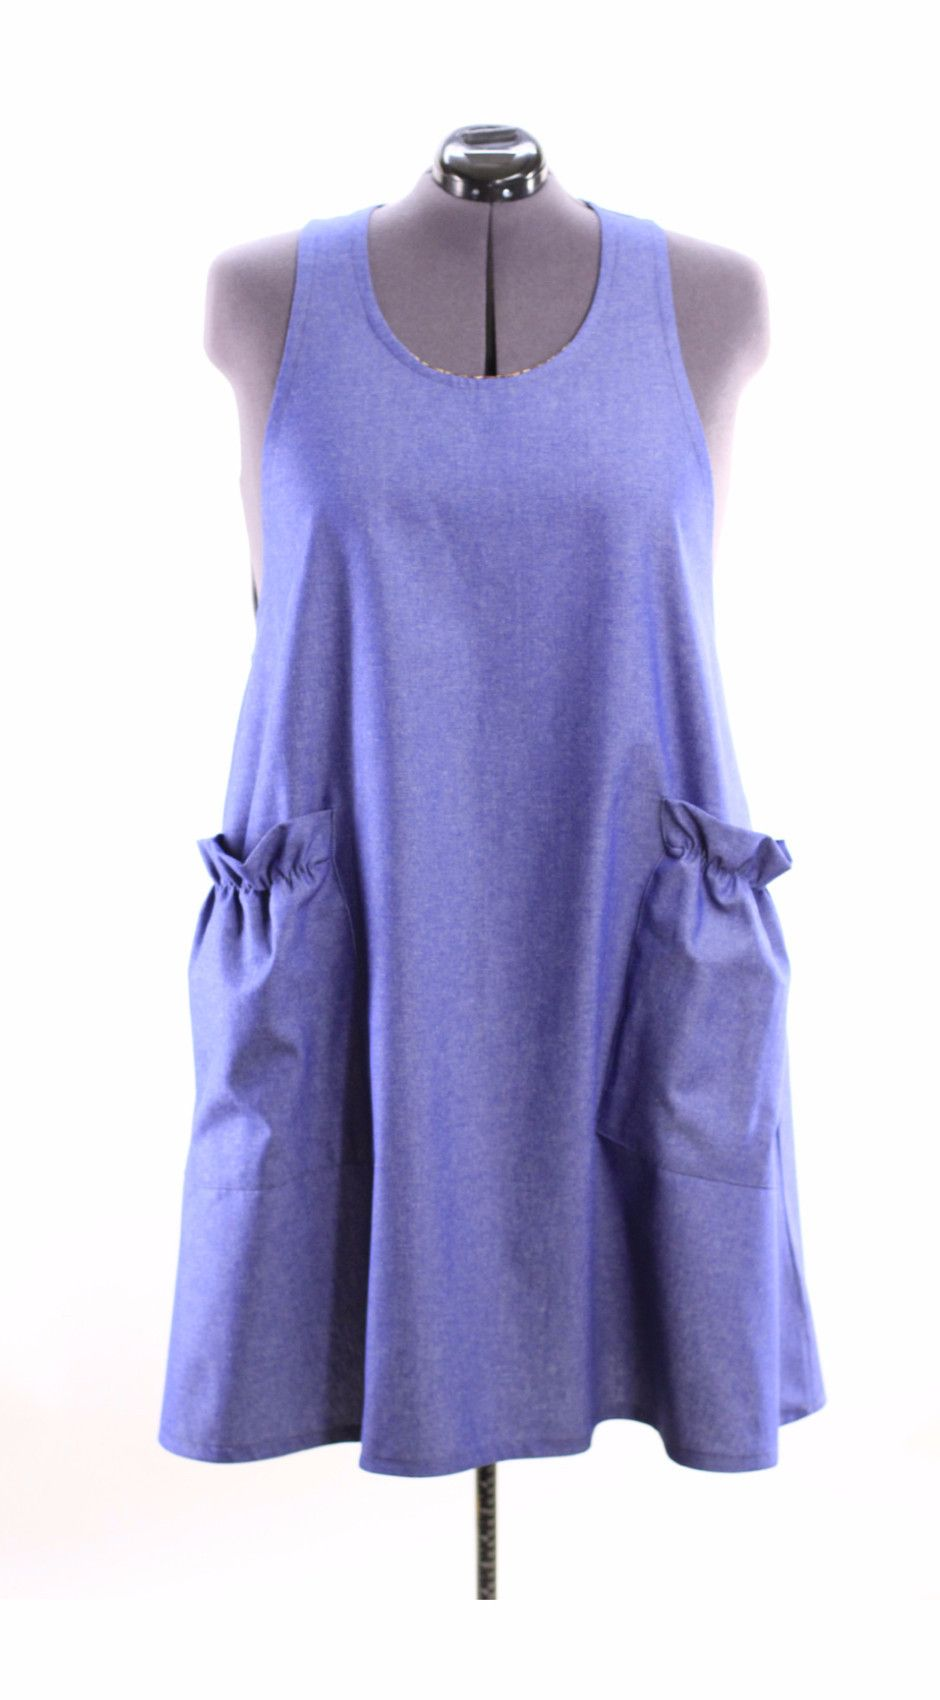 Plus size no tie apron in navy blue denim with criss cross back